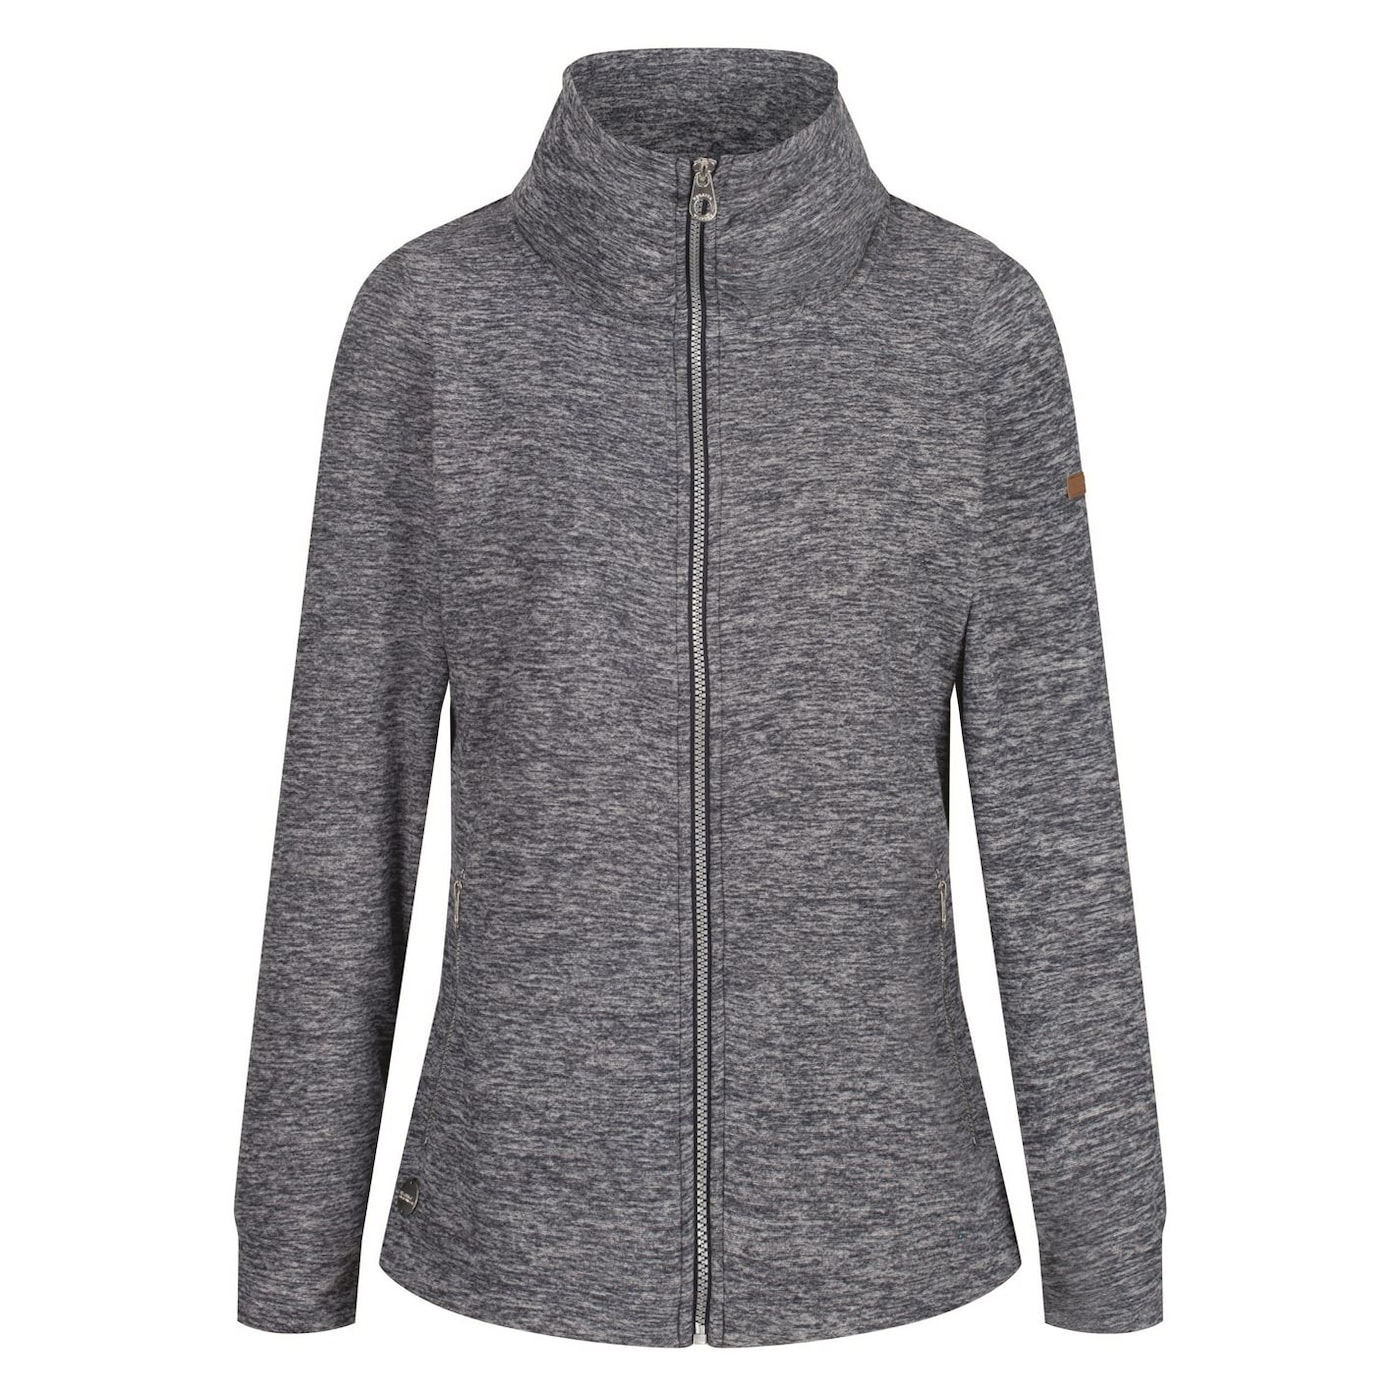 Regatta Ezri Fleece Jacket Ladies